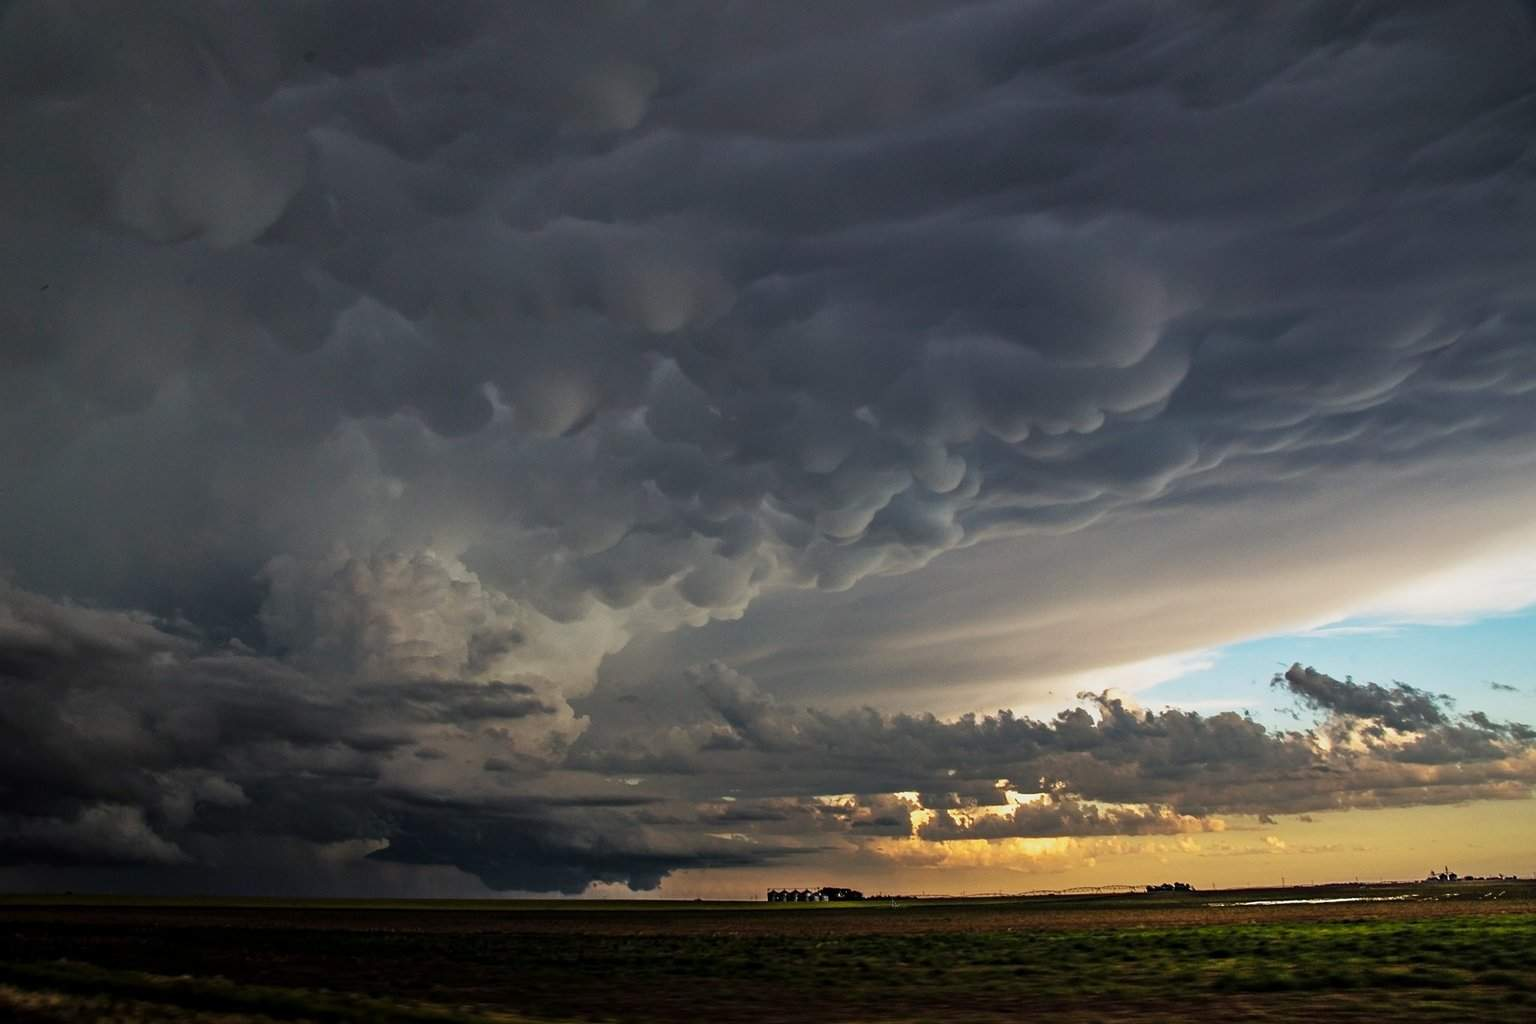 Tail end of Plains/Ensign KS supercell shortly after birth 5-24-2015 Mammatus stretches from underneath the anvil above a sturdy updraft and wall cloud as the sun sets on this amazing storm. It would go on to produce multiple tornadoes that we experienced later in the night, from a large wedge, stovepipe, elephant trunk and cone shapes all making appearances. Difficult shot here in diminishing light from a moving vehicle.